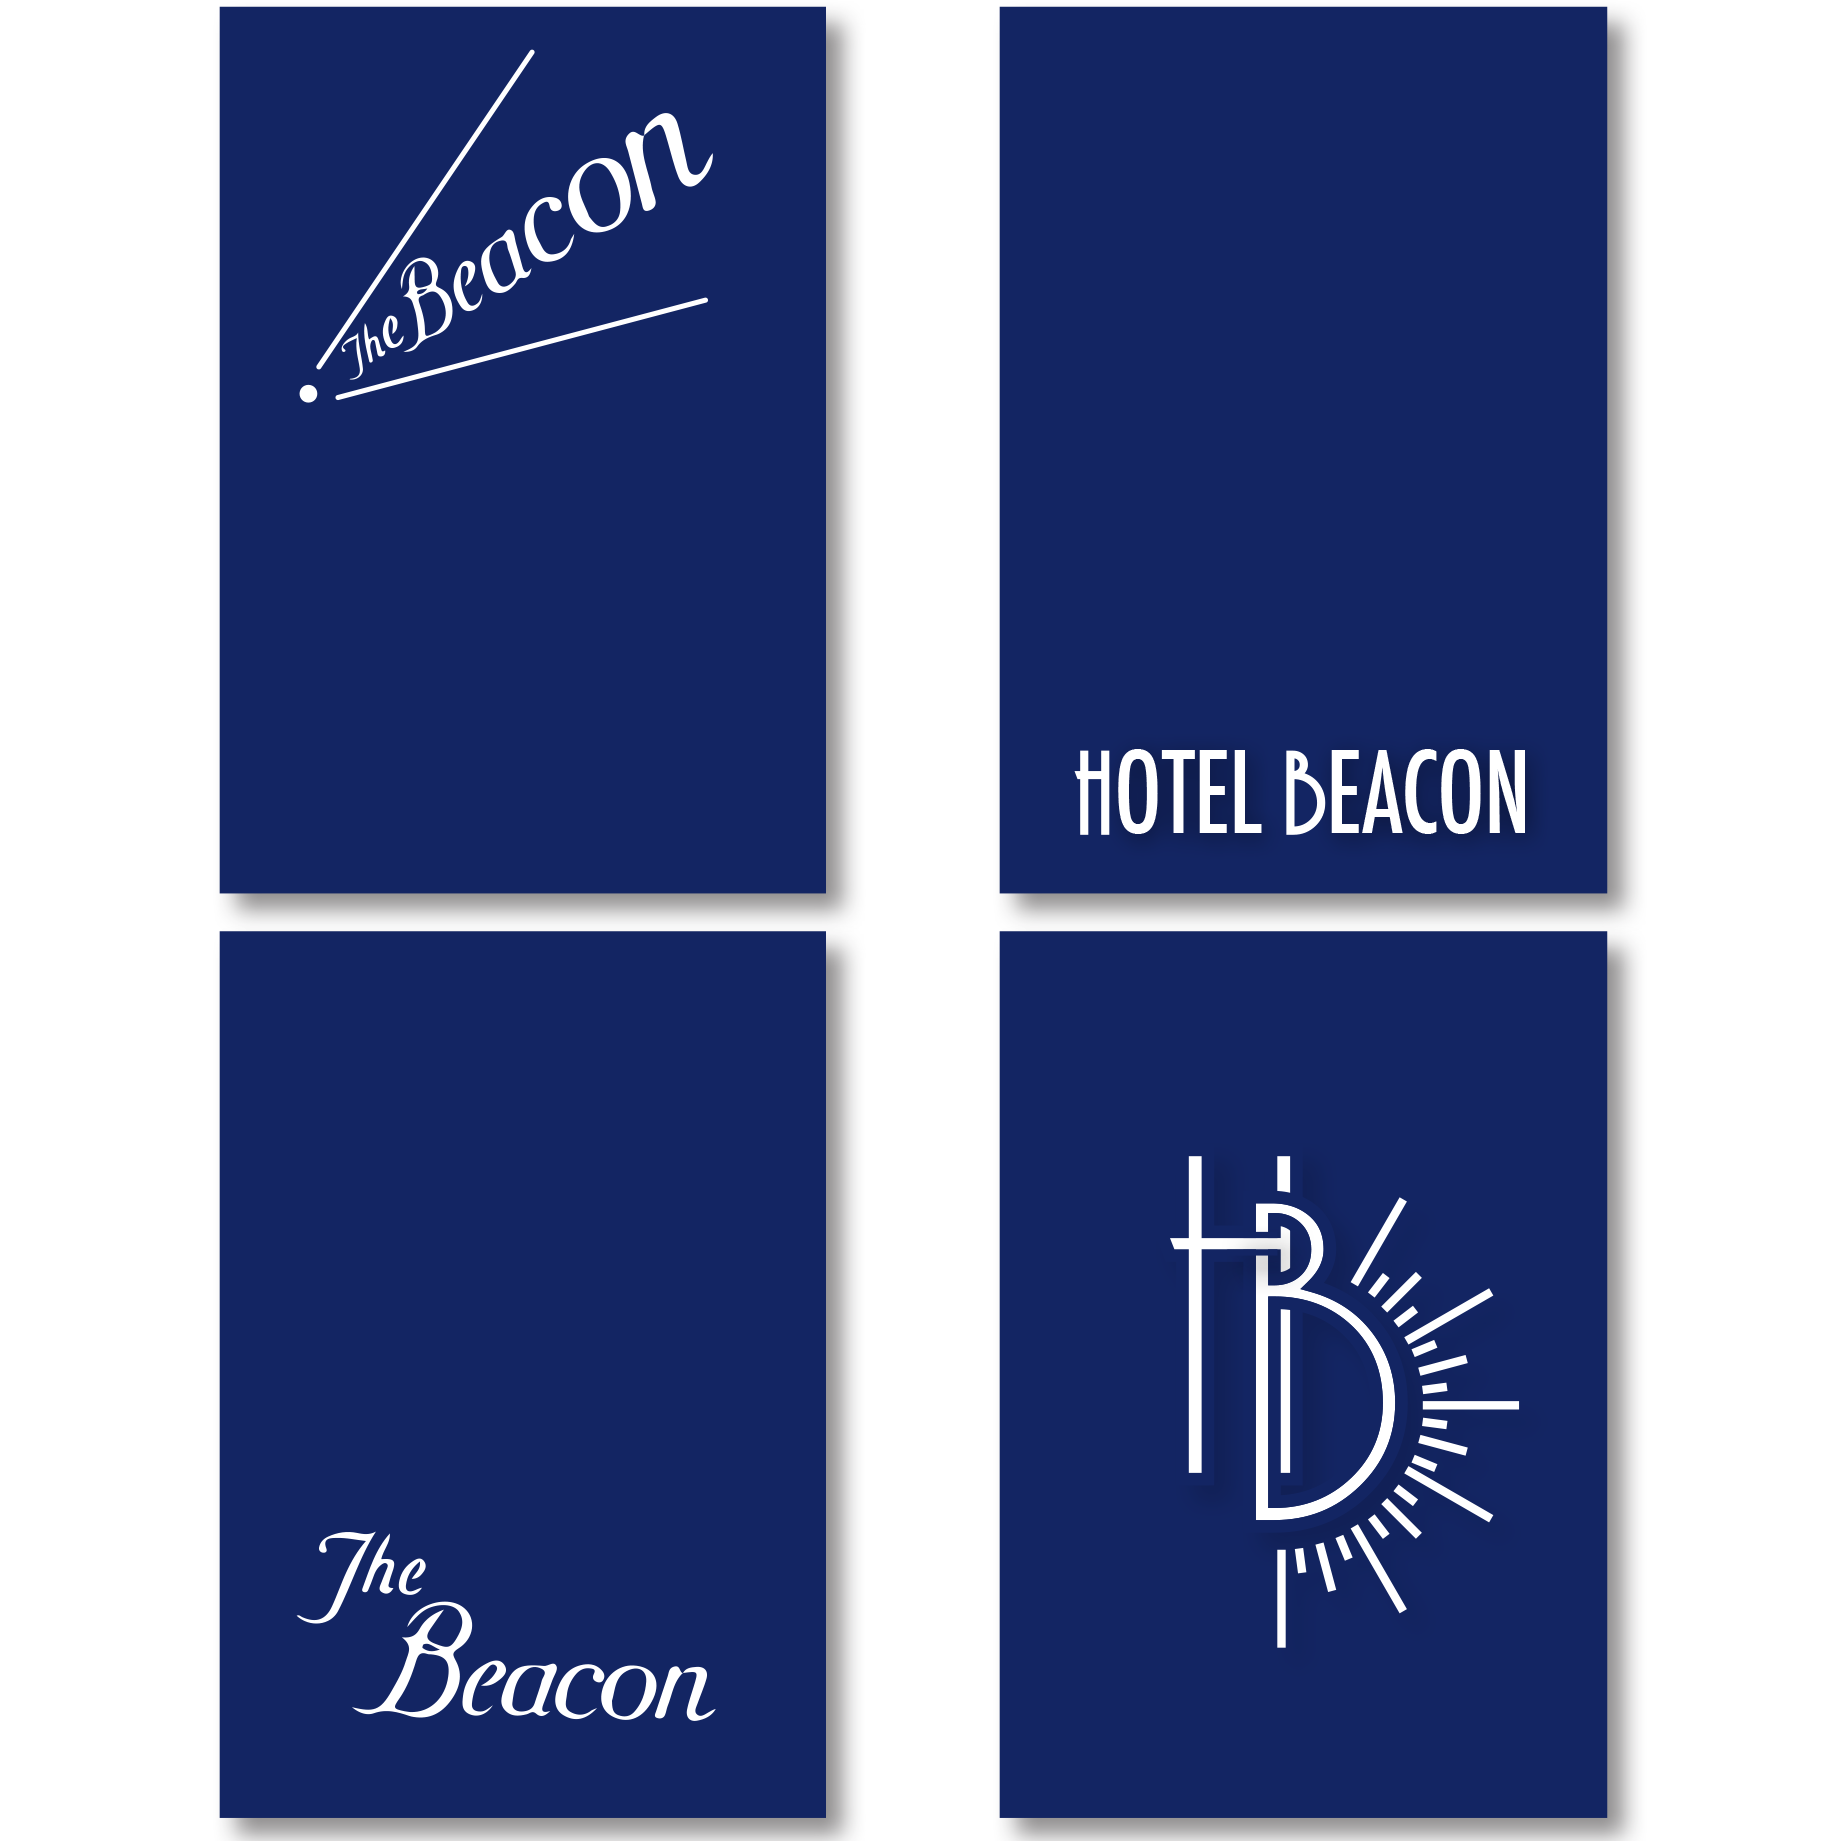 Beacon Hotel_logos01.png